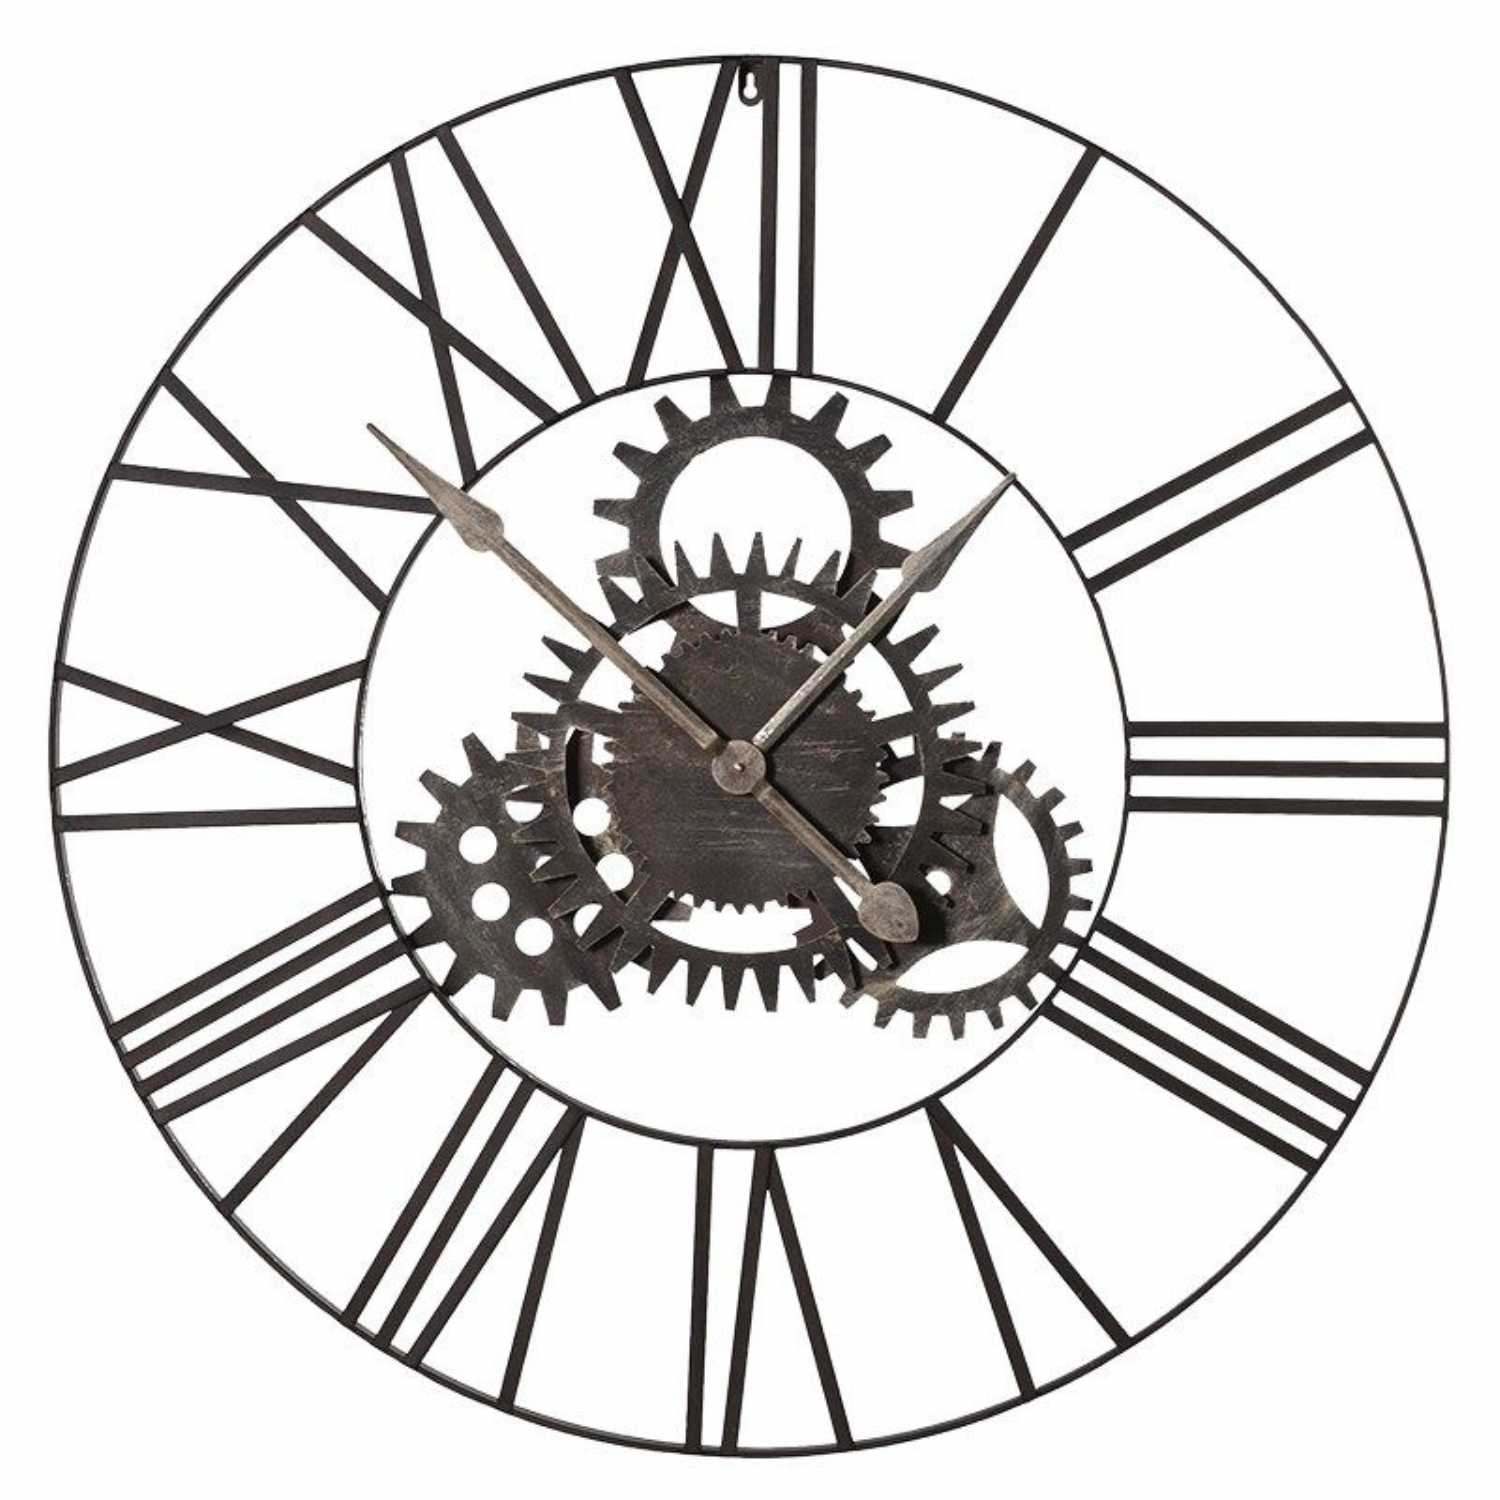 Steampunk Clock Drawing At Getdrawings Com Free For